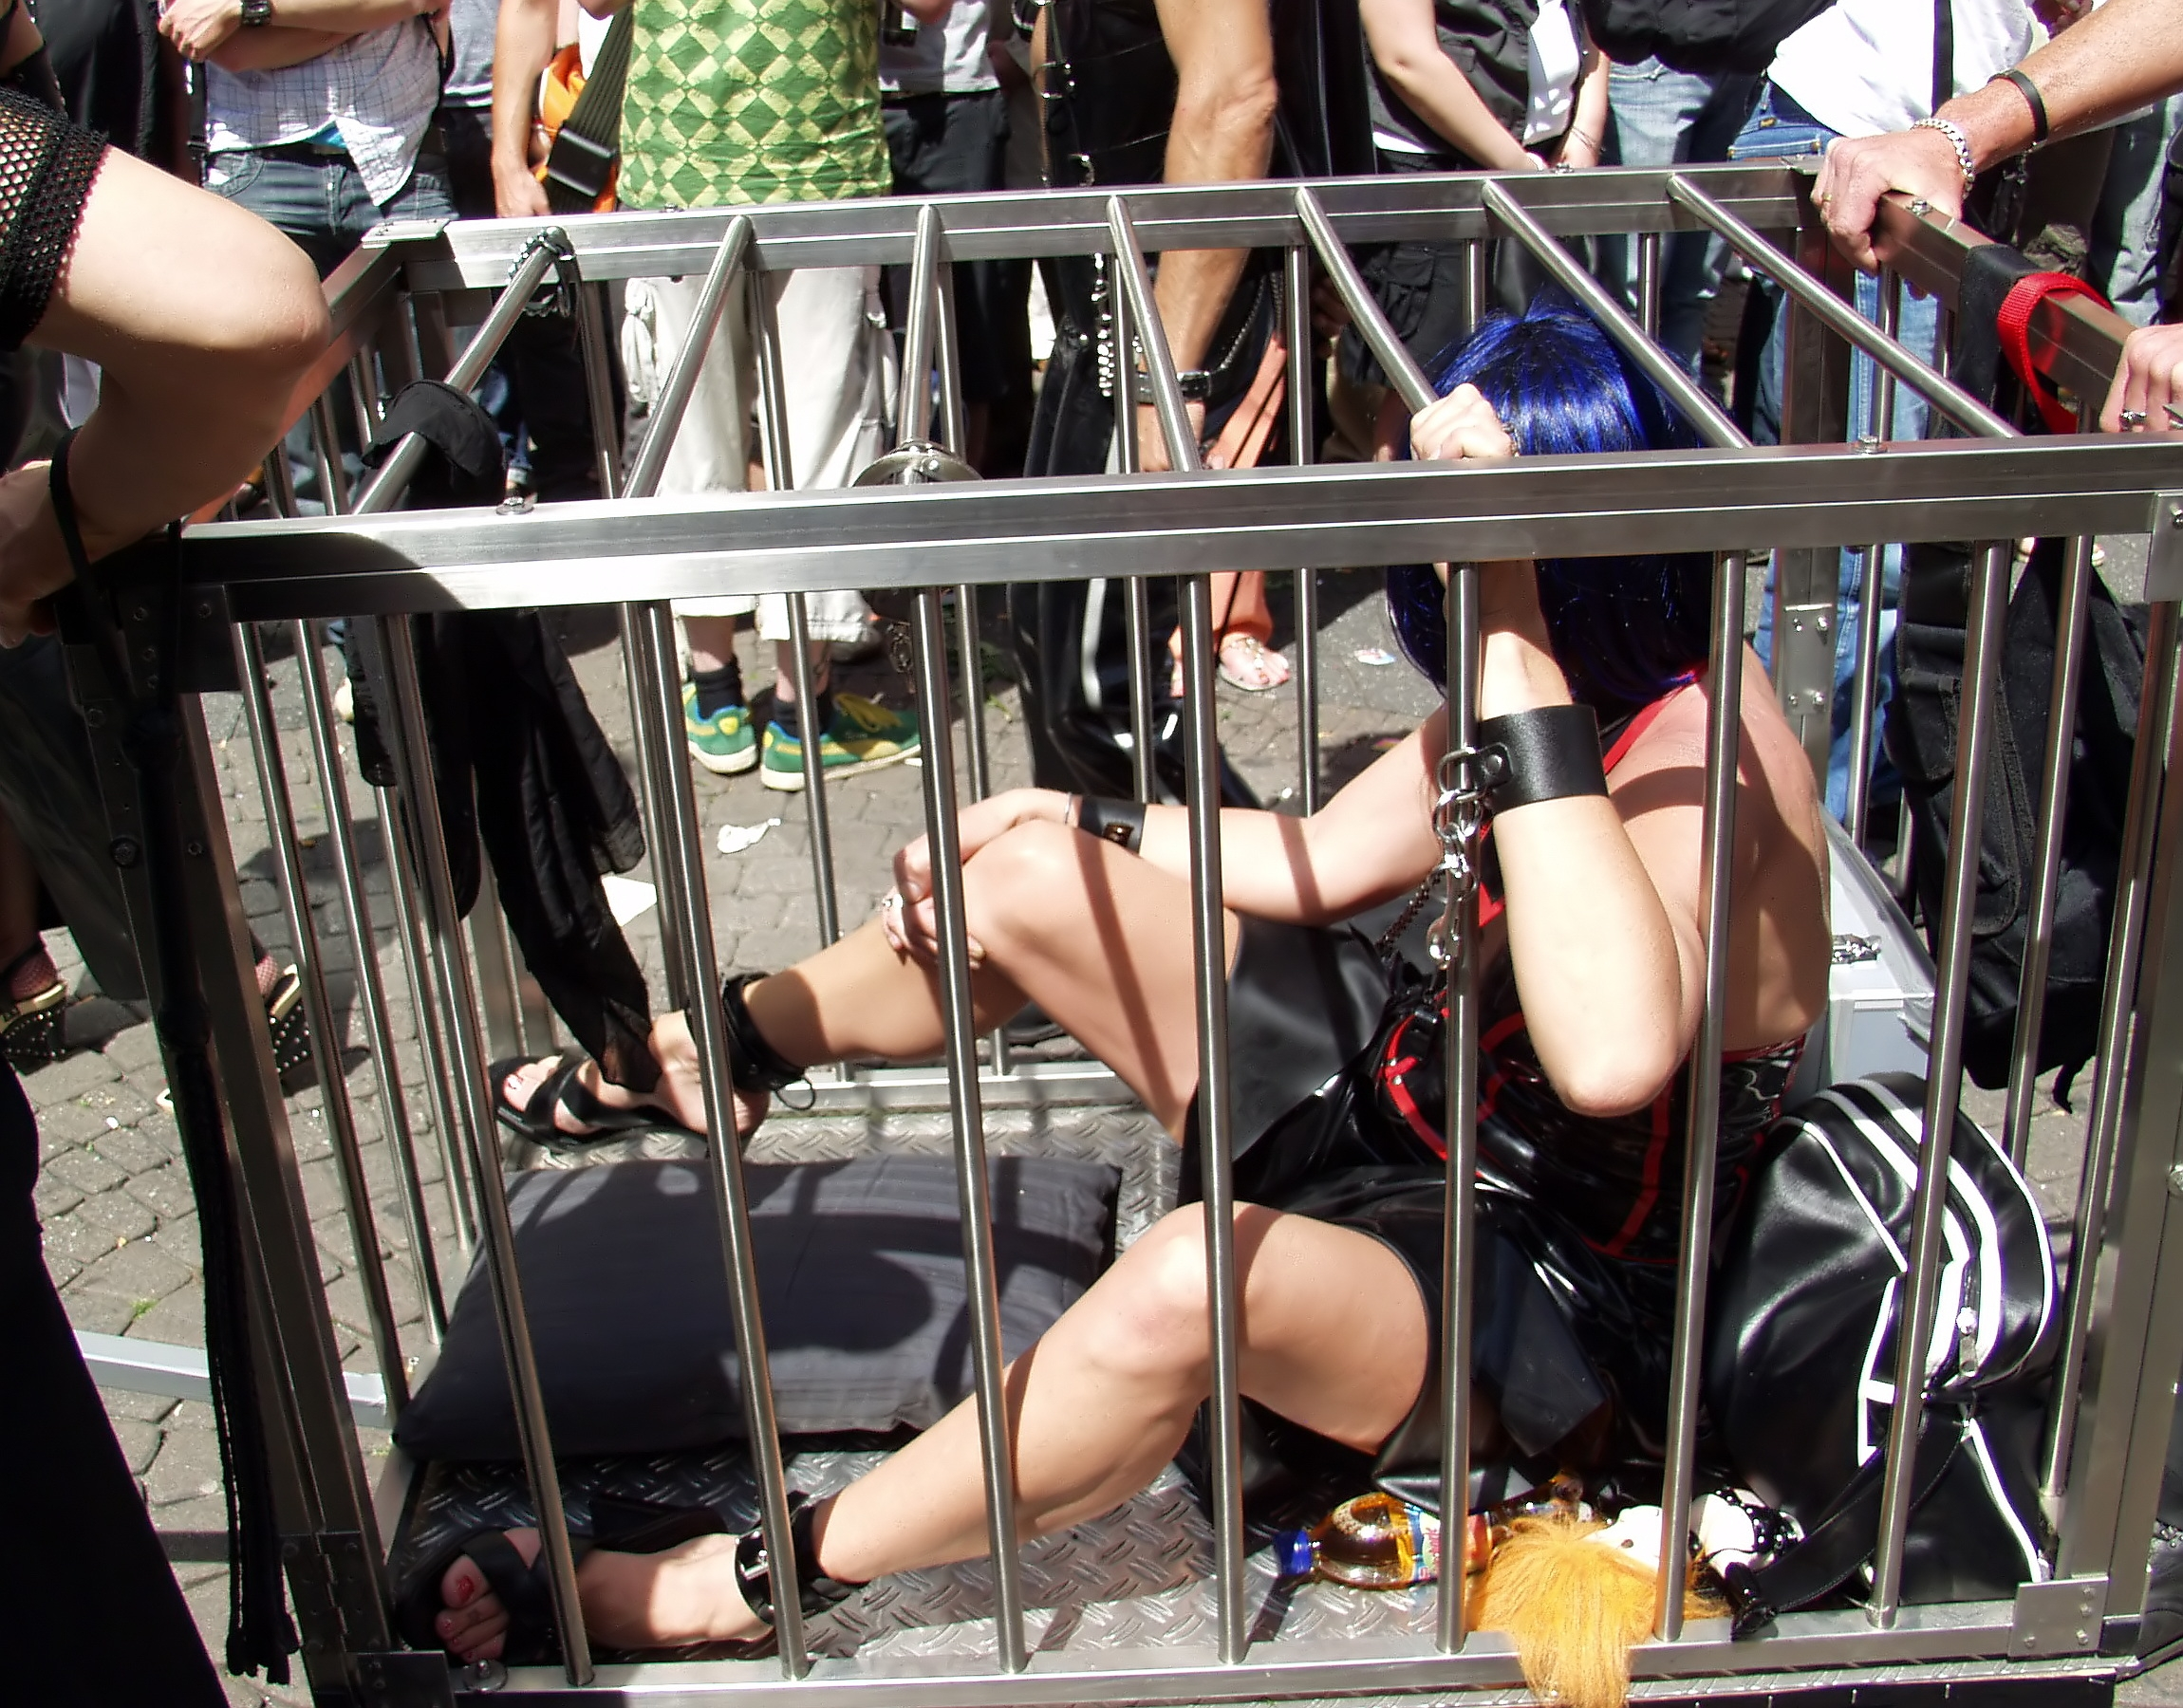 http://upload.wikimedia.org/wikipedia/commons/c/ce/Slave_in_cage_on_CSD_Cologne_2007_(7739).jpg